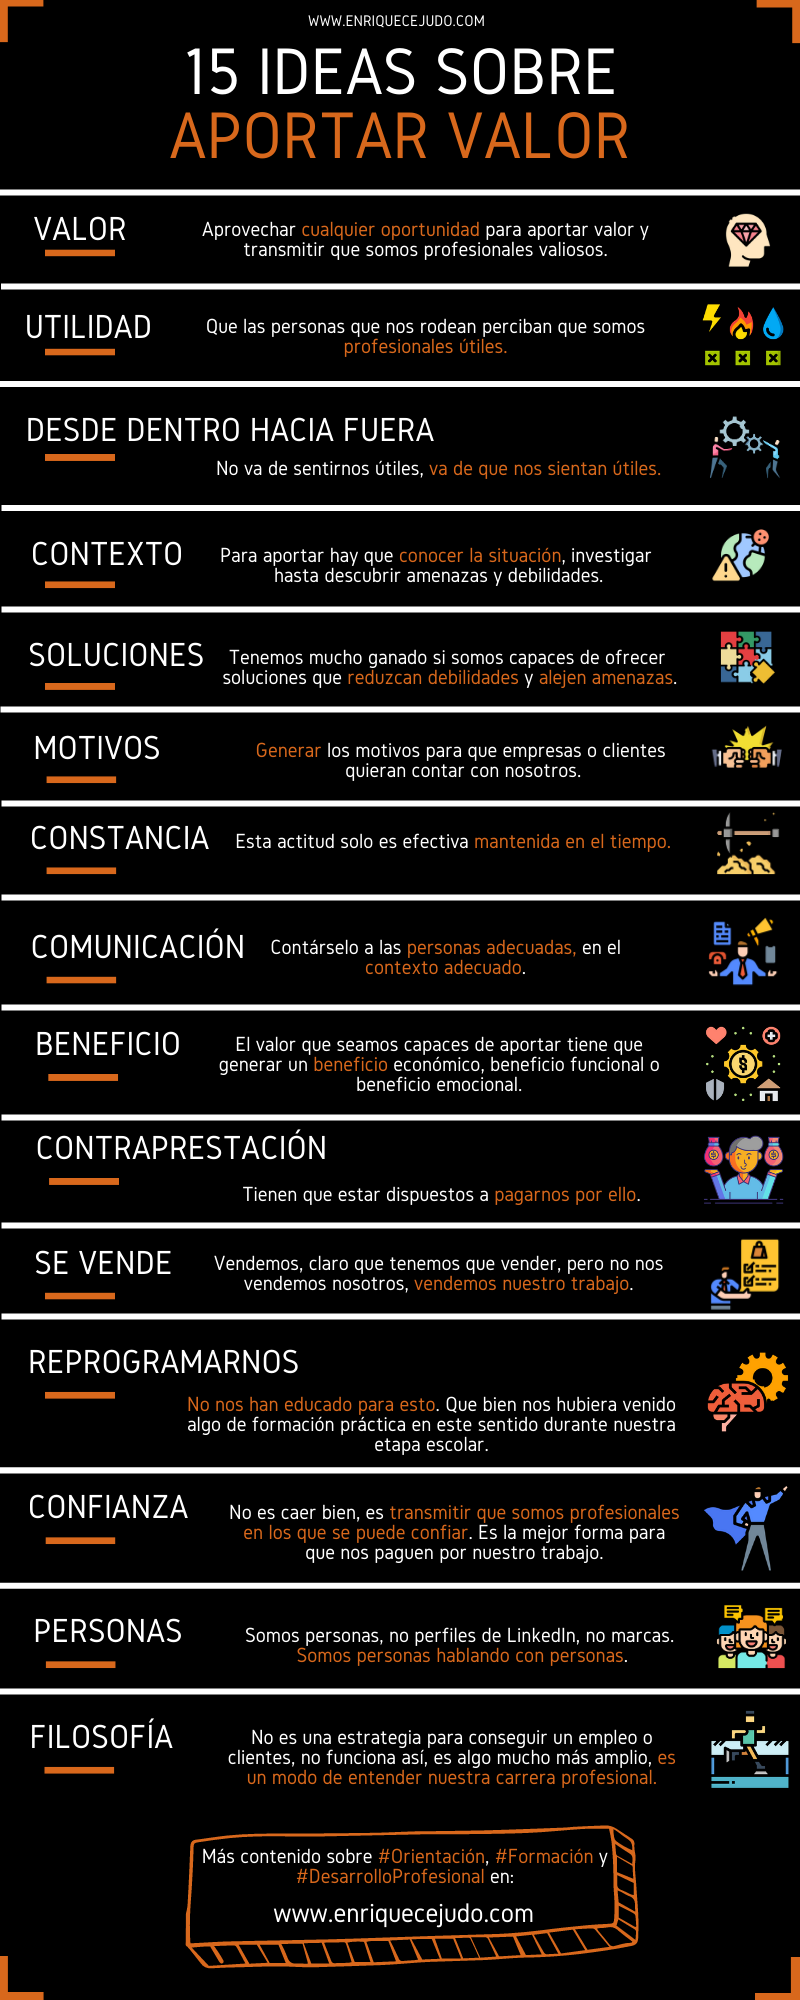 15 ideas sobre aportar valor